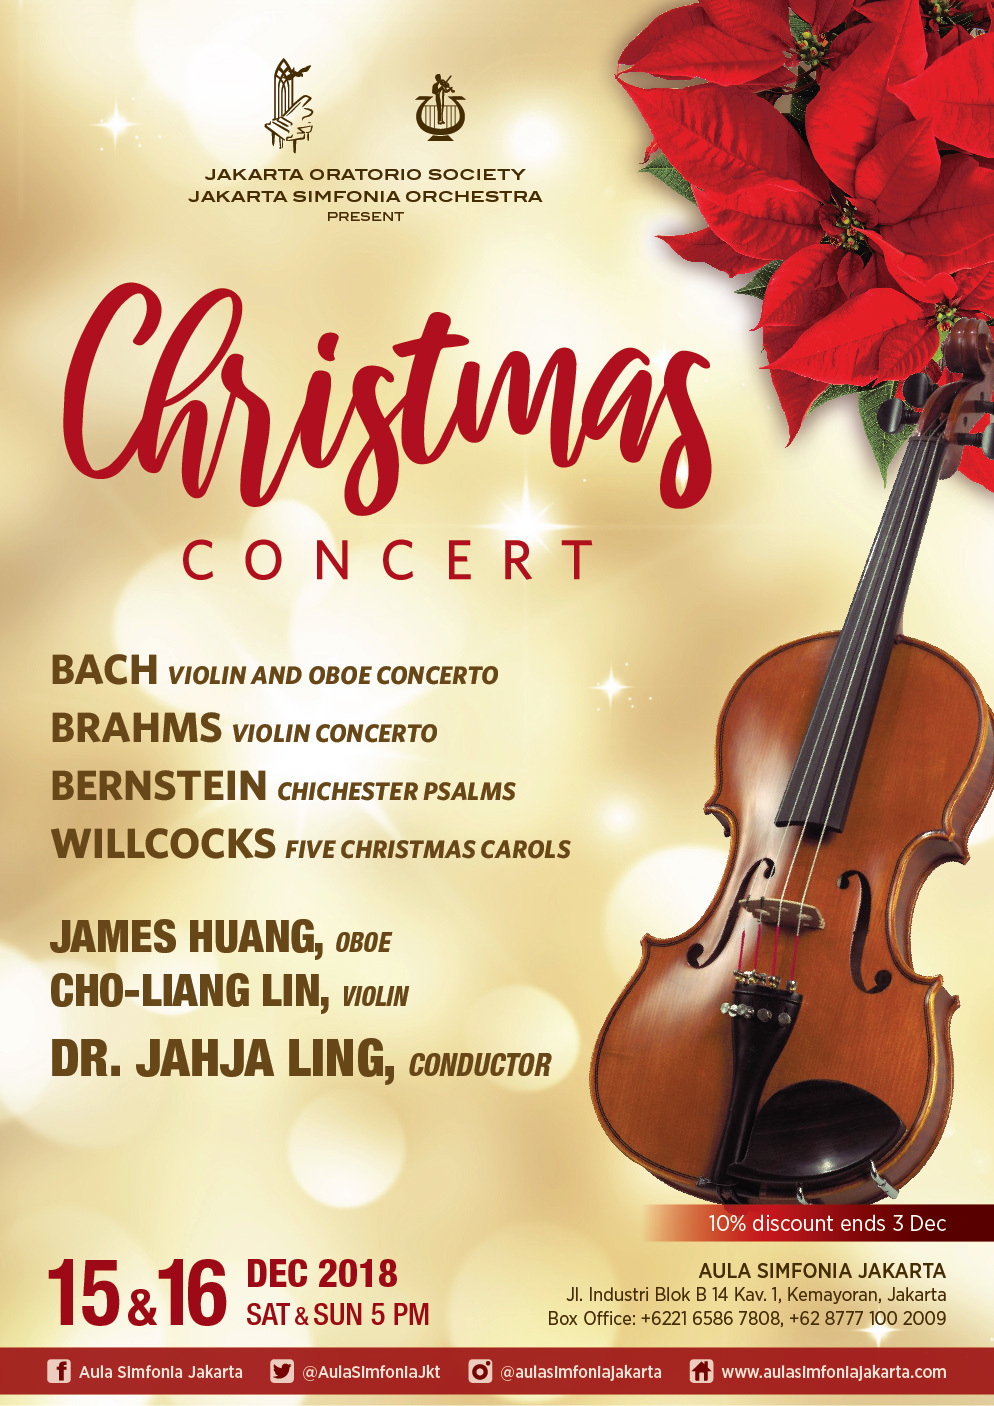 A CHRISTMAS CONCERT Comes To Jakarta Symphony 12/15 and 12/16